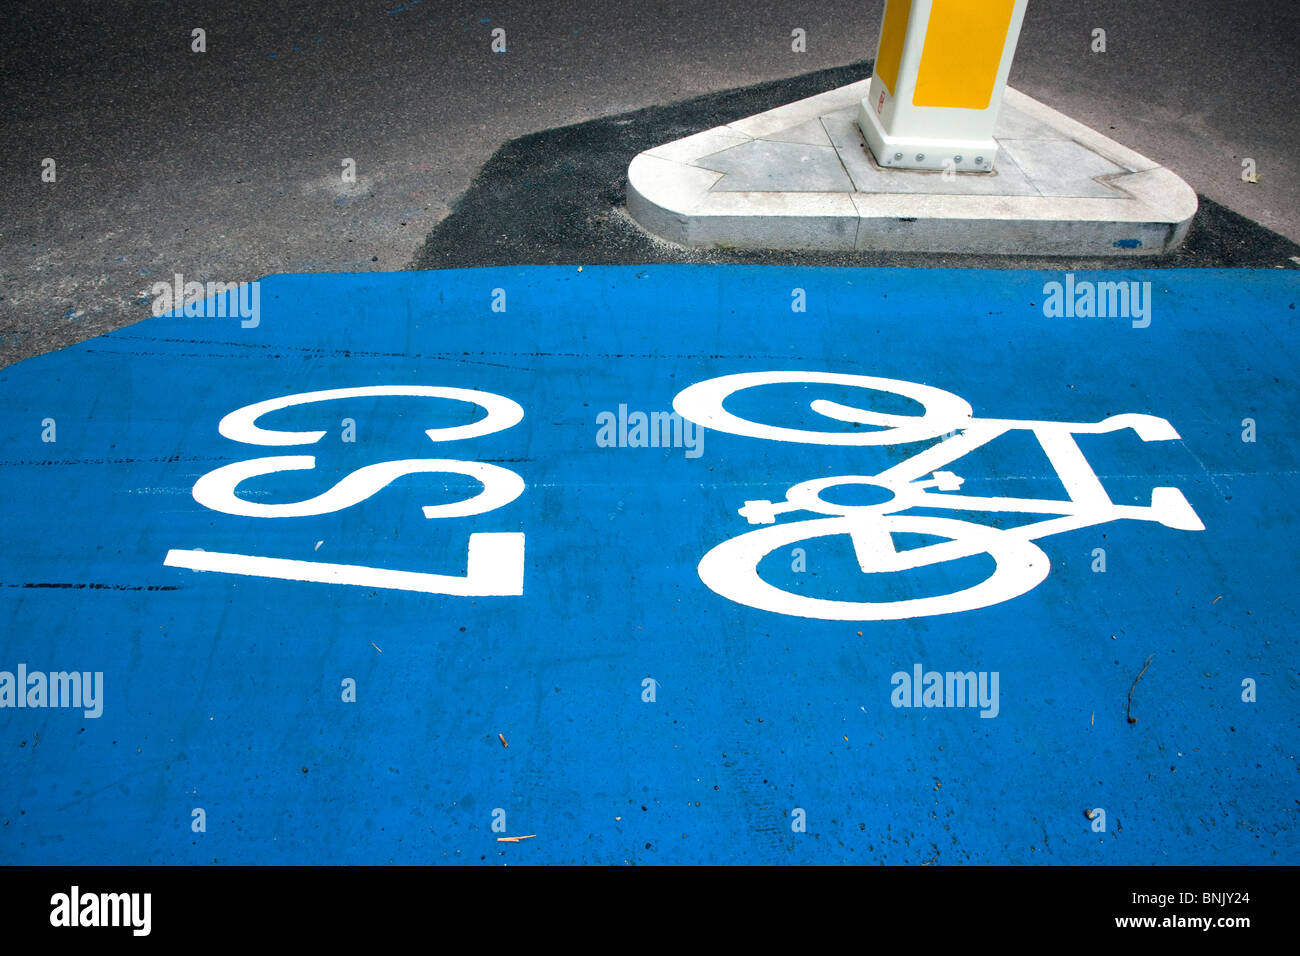 Cycle Superhighway bike lane, London - Stock Image